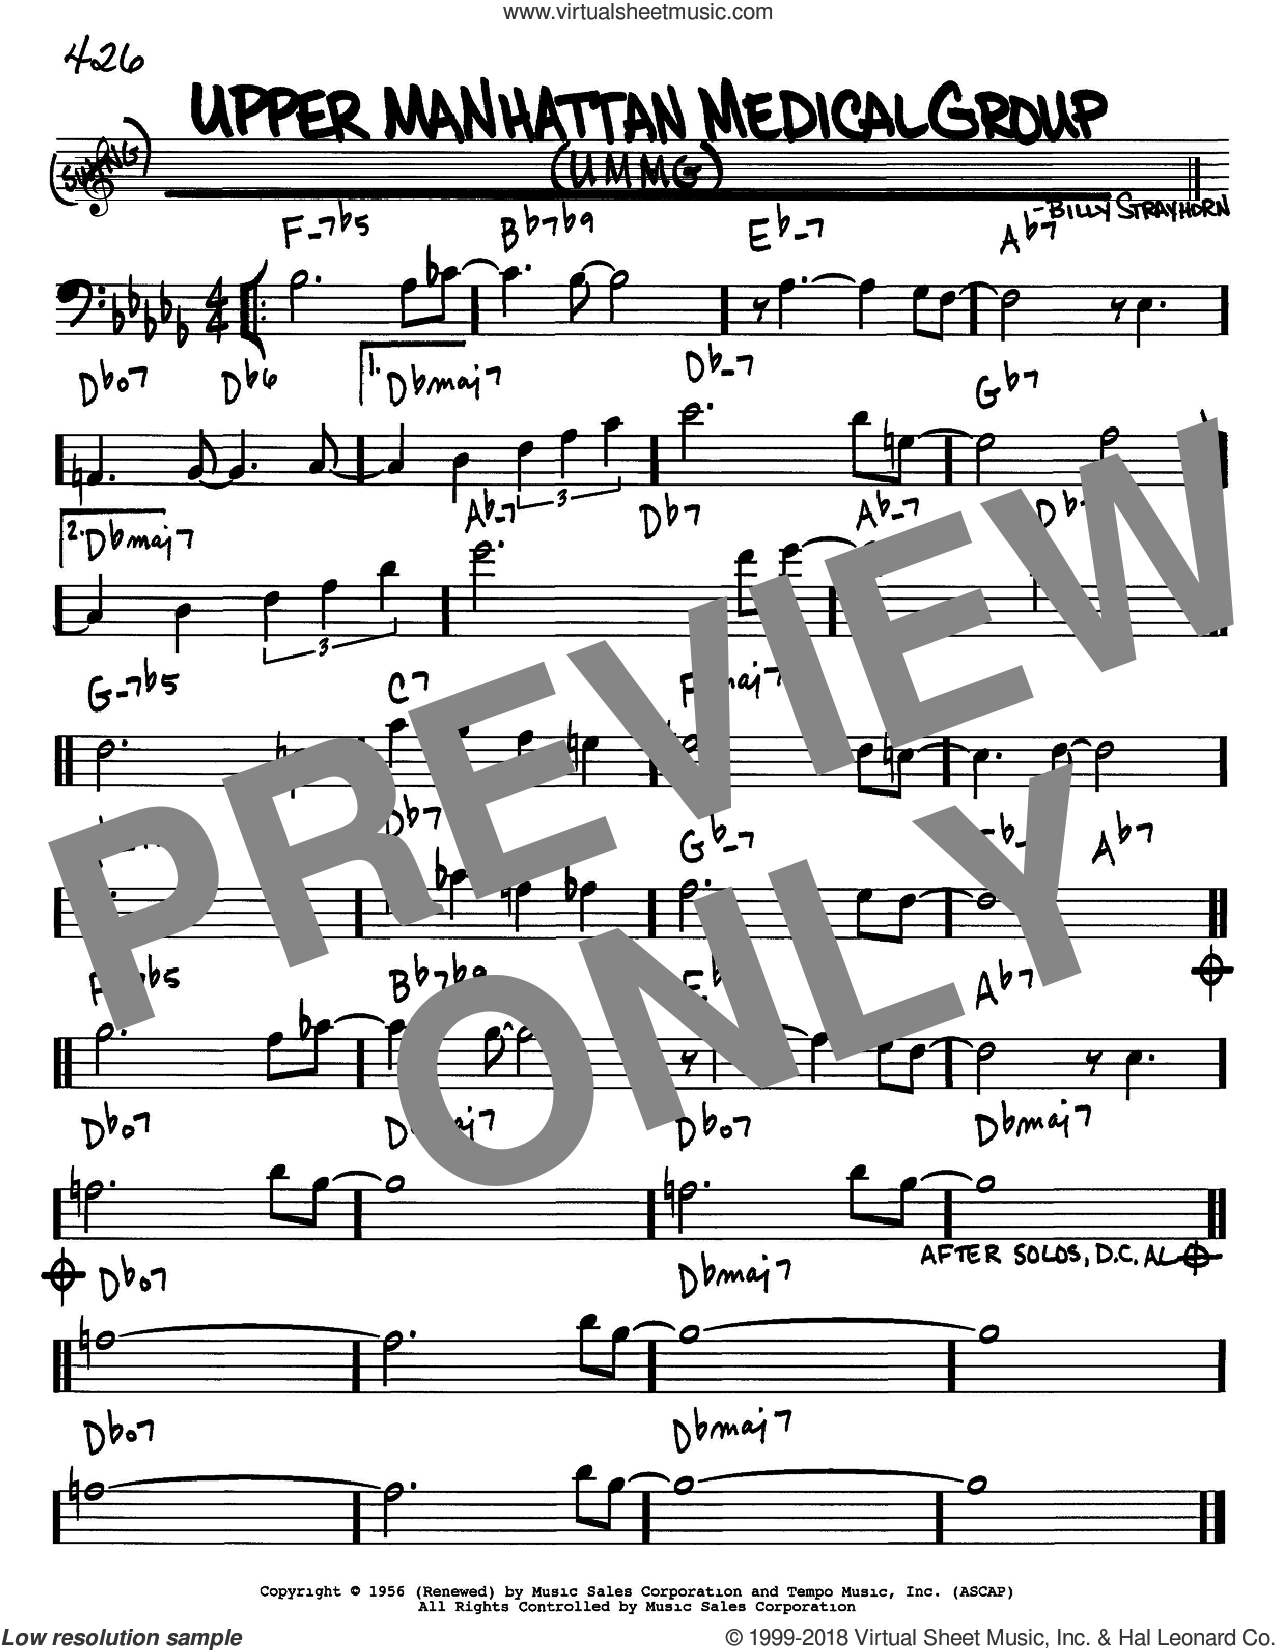 Upper Manhattan Medical Group (UMMG) sheet music for voice and other instruments (Bass Clef ) by Billy Strayhorn. Score Image Preview.